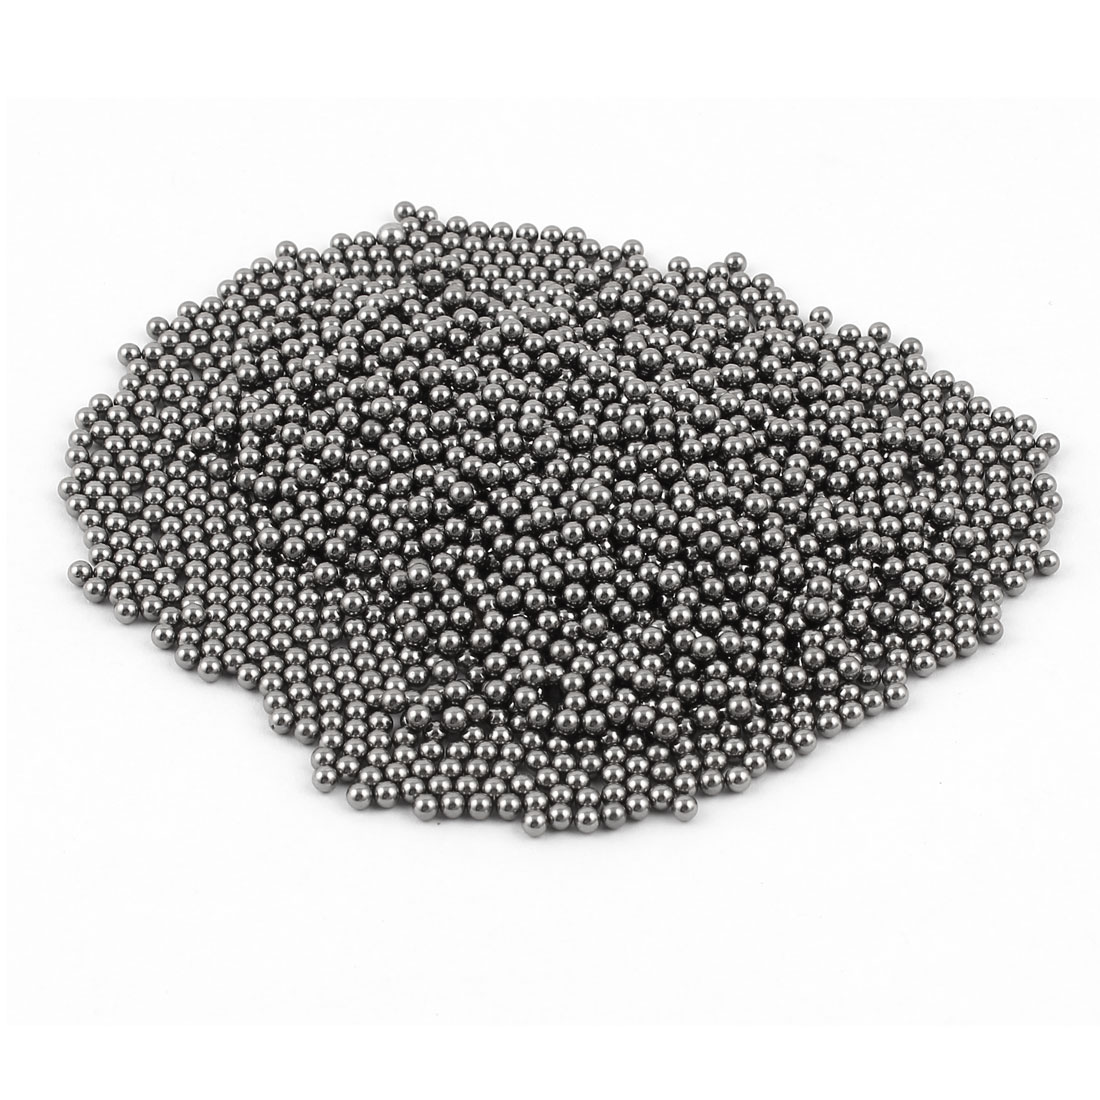 1800 Pcs Bike Bicycle Repairing Parts 3mm Dia Steel Ball Bearings